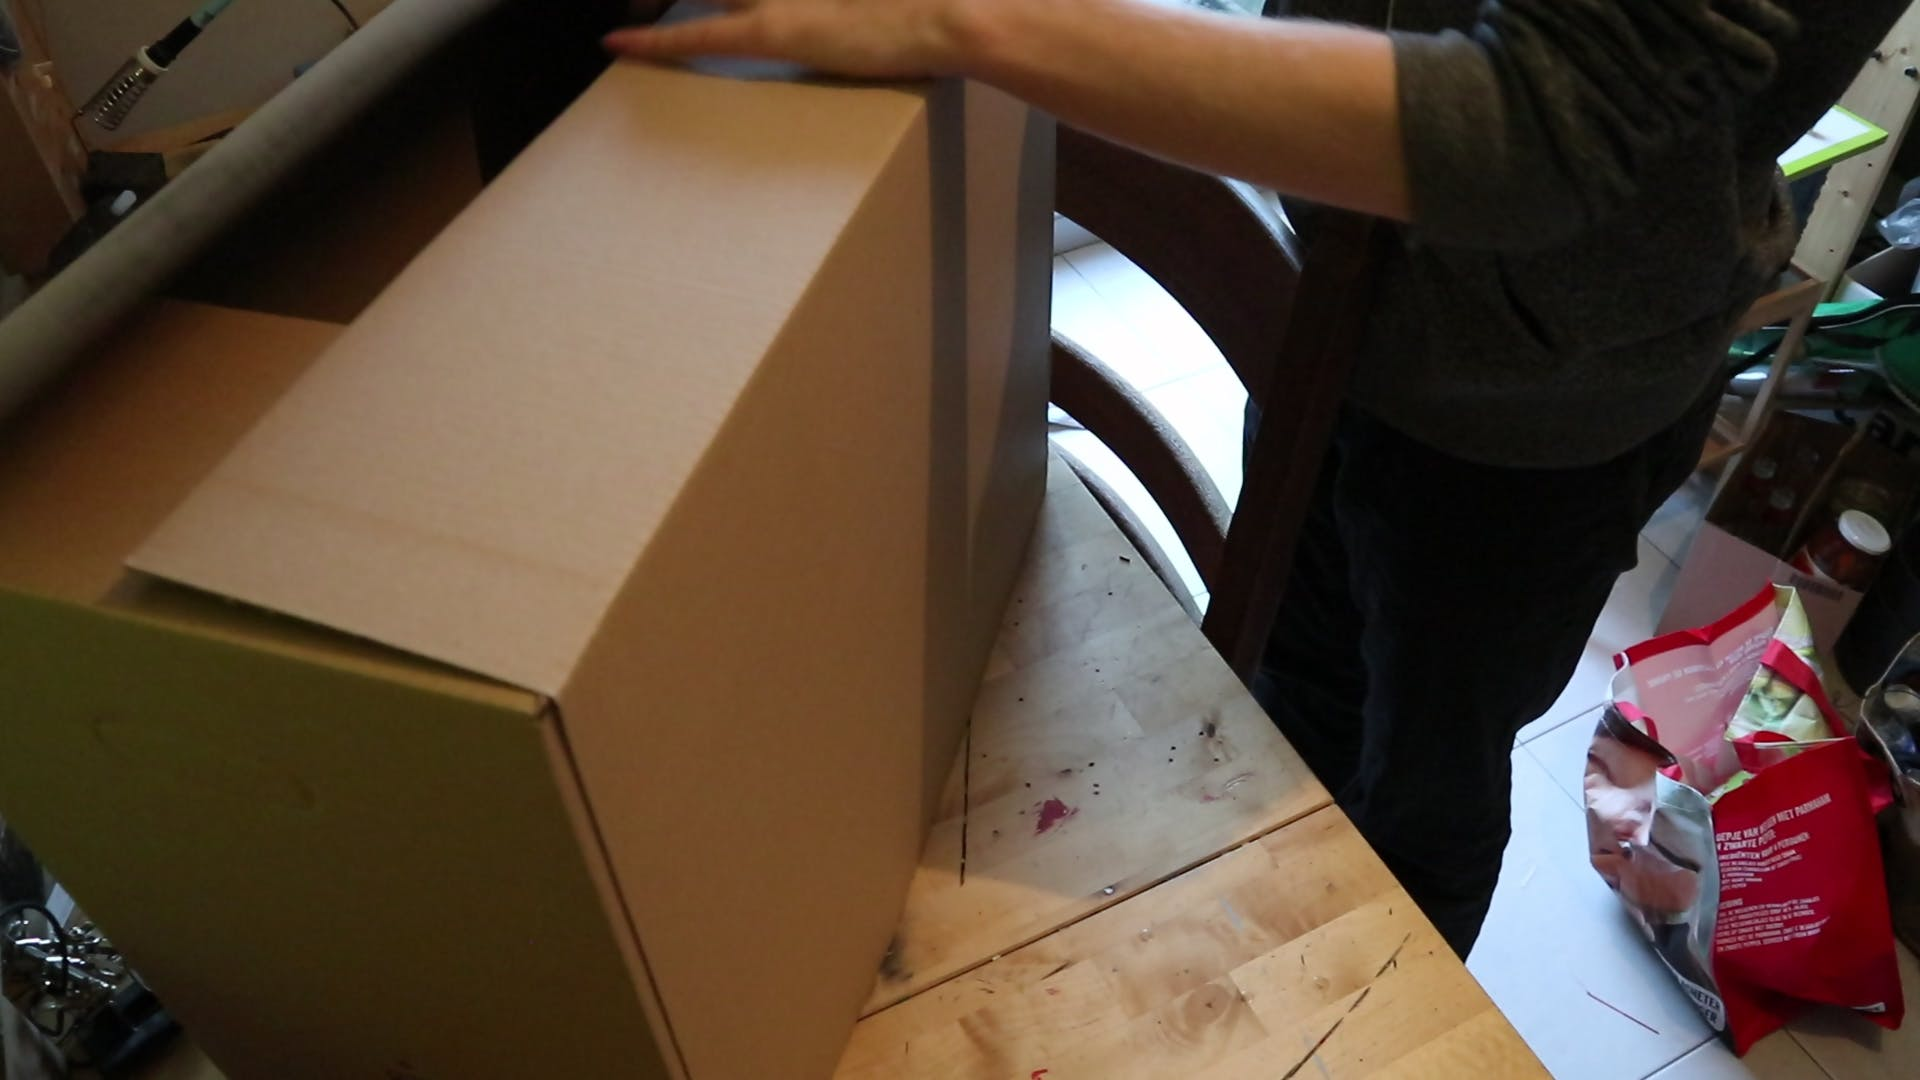 The folding of one box